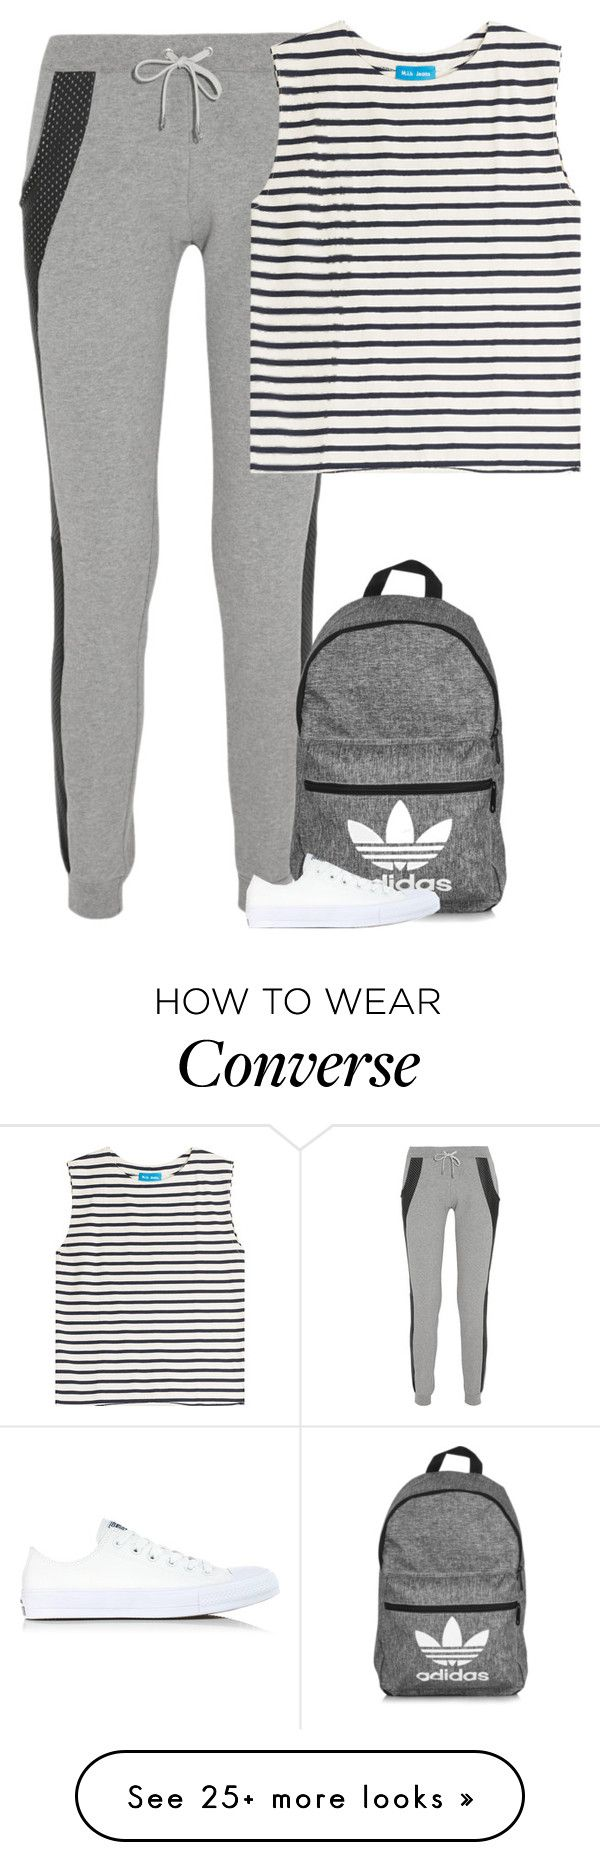 """""""Lazy"""" by fanny483 on Polyvore featuring Lot78, M.i.h Jeans, adidas and Converse"""